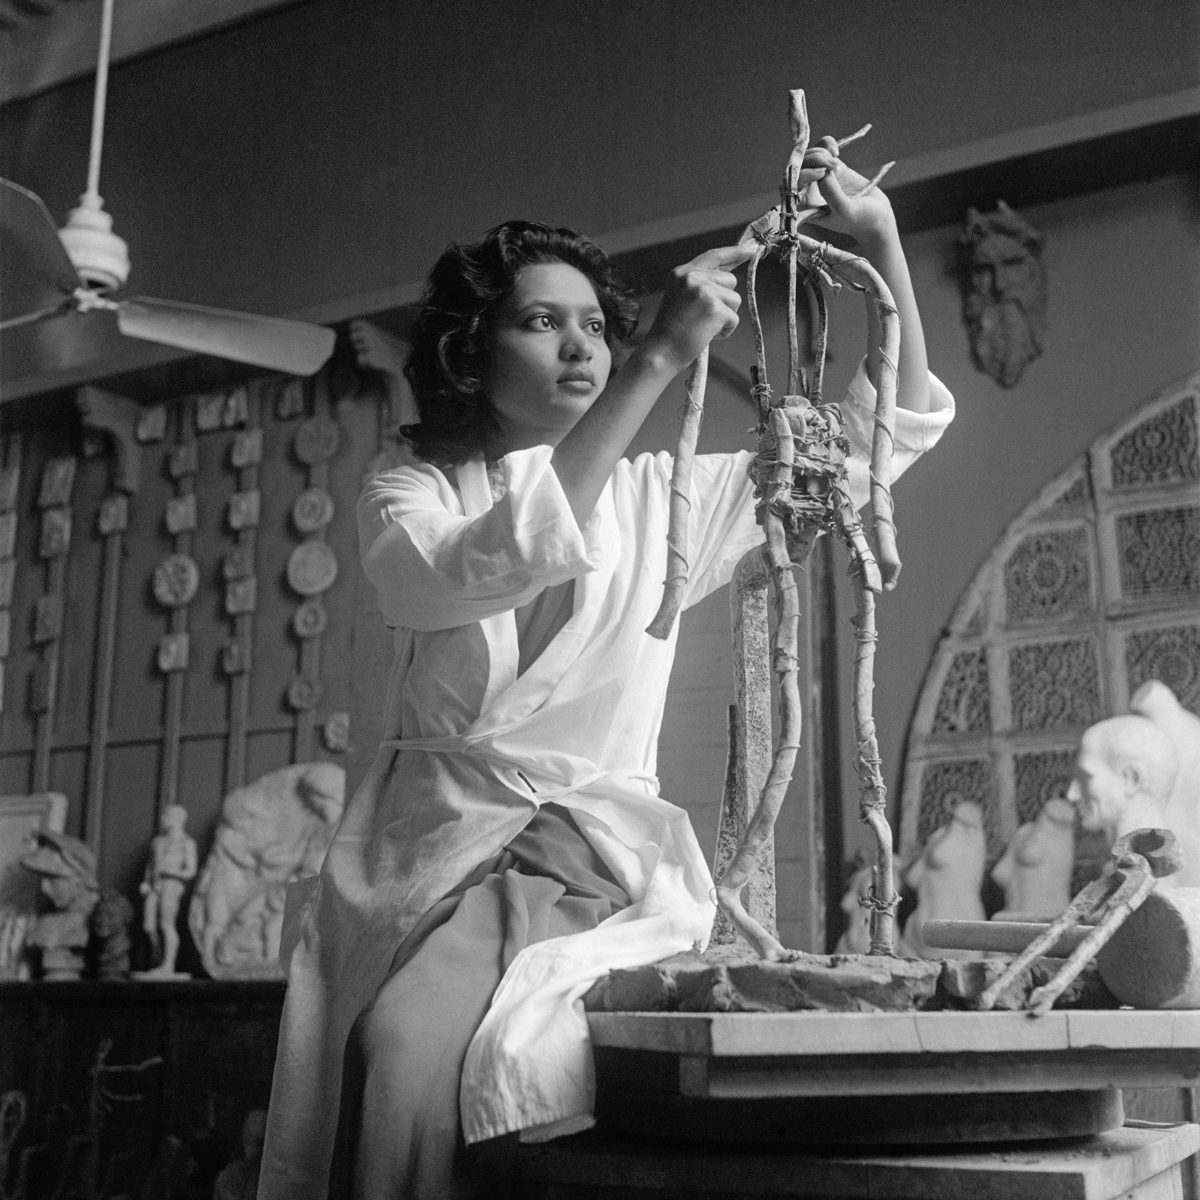 Rehana Mogul at the Sir JJ School of the Arts, Bombay, Early 1940s, Homai Vyarawalla. A woman is seen in a white artist coat building a sculpture